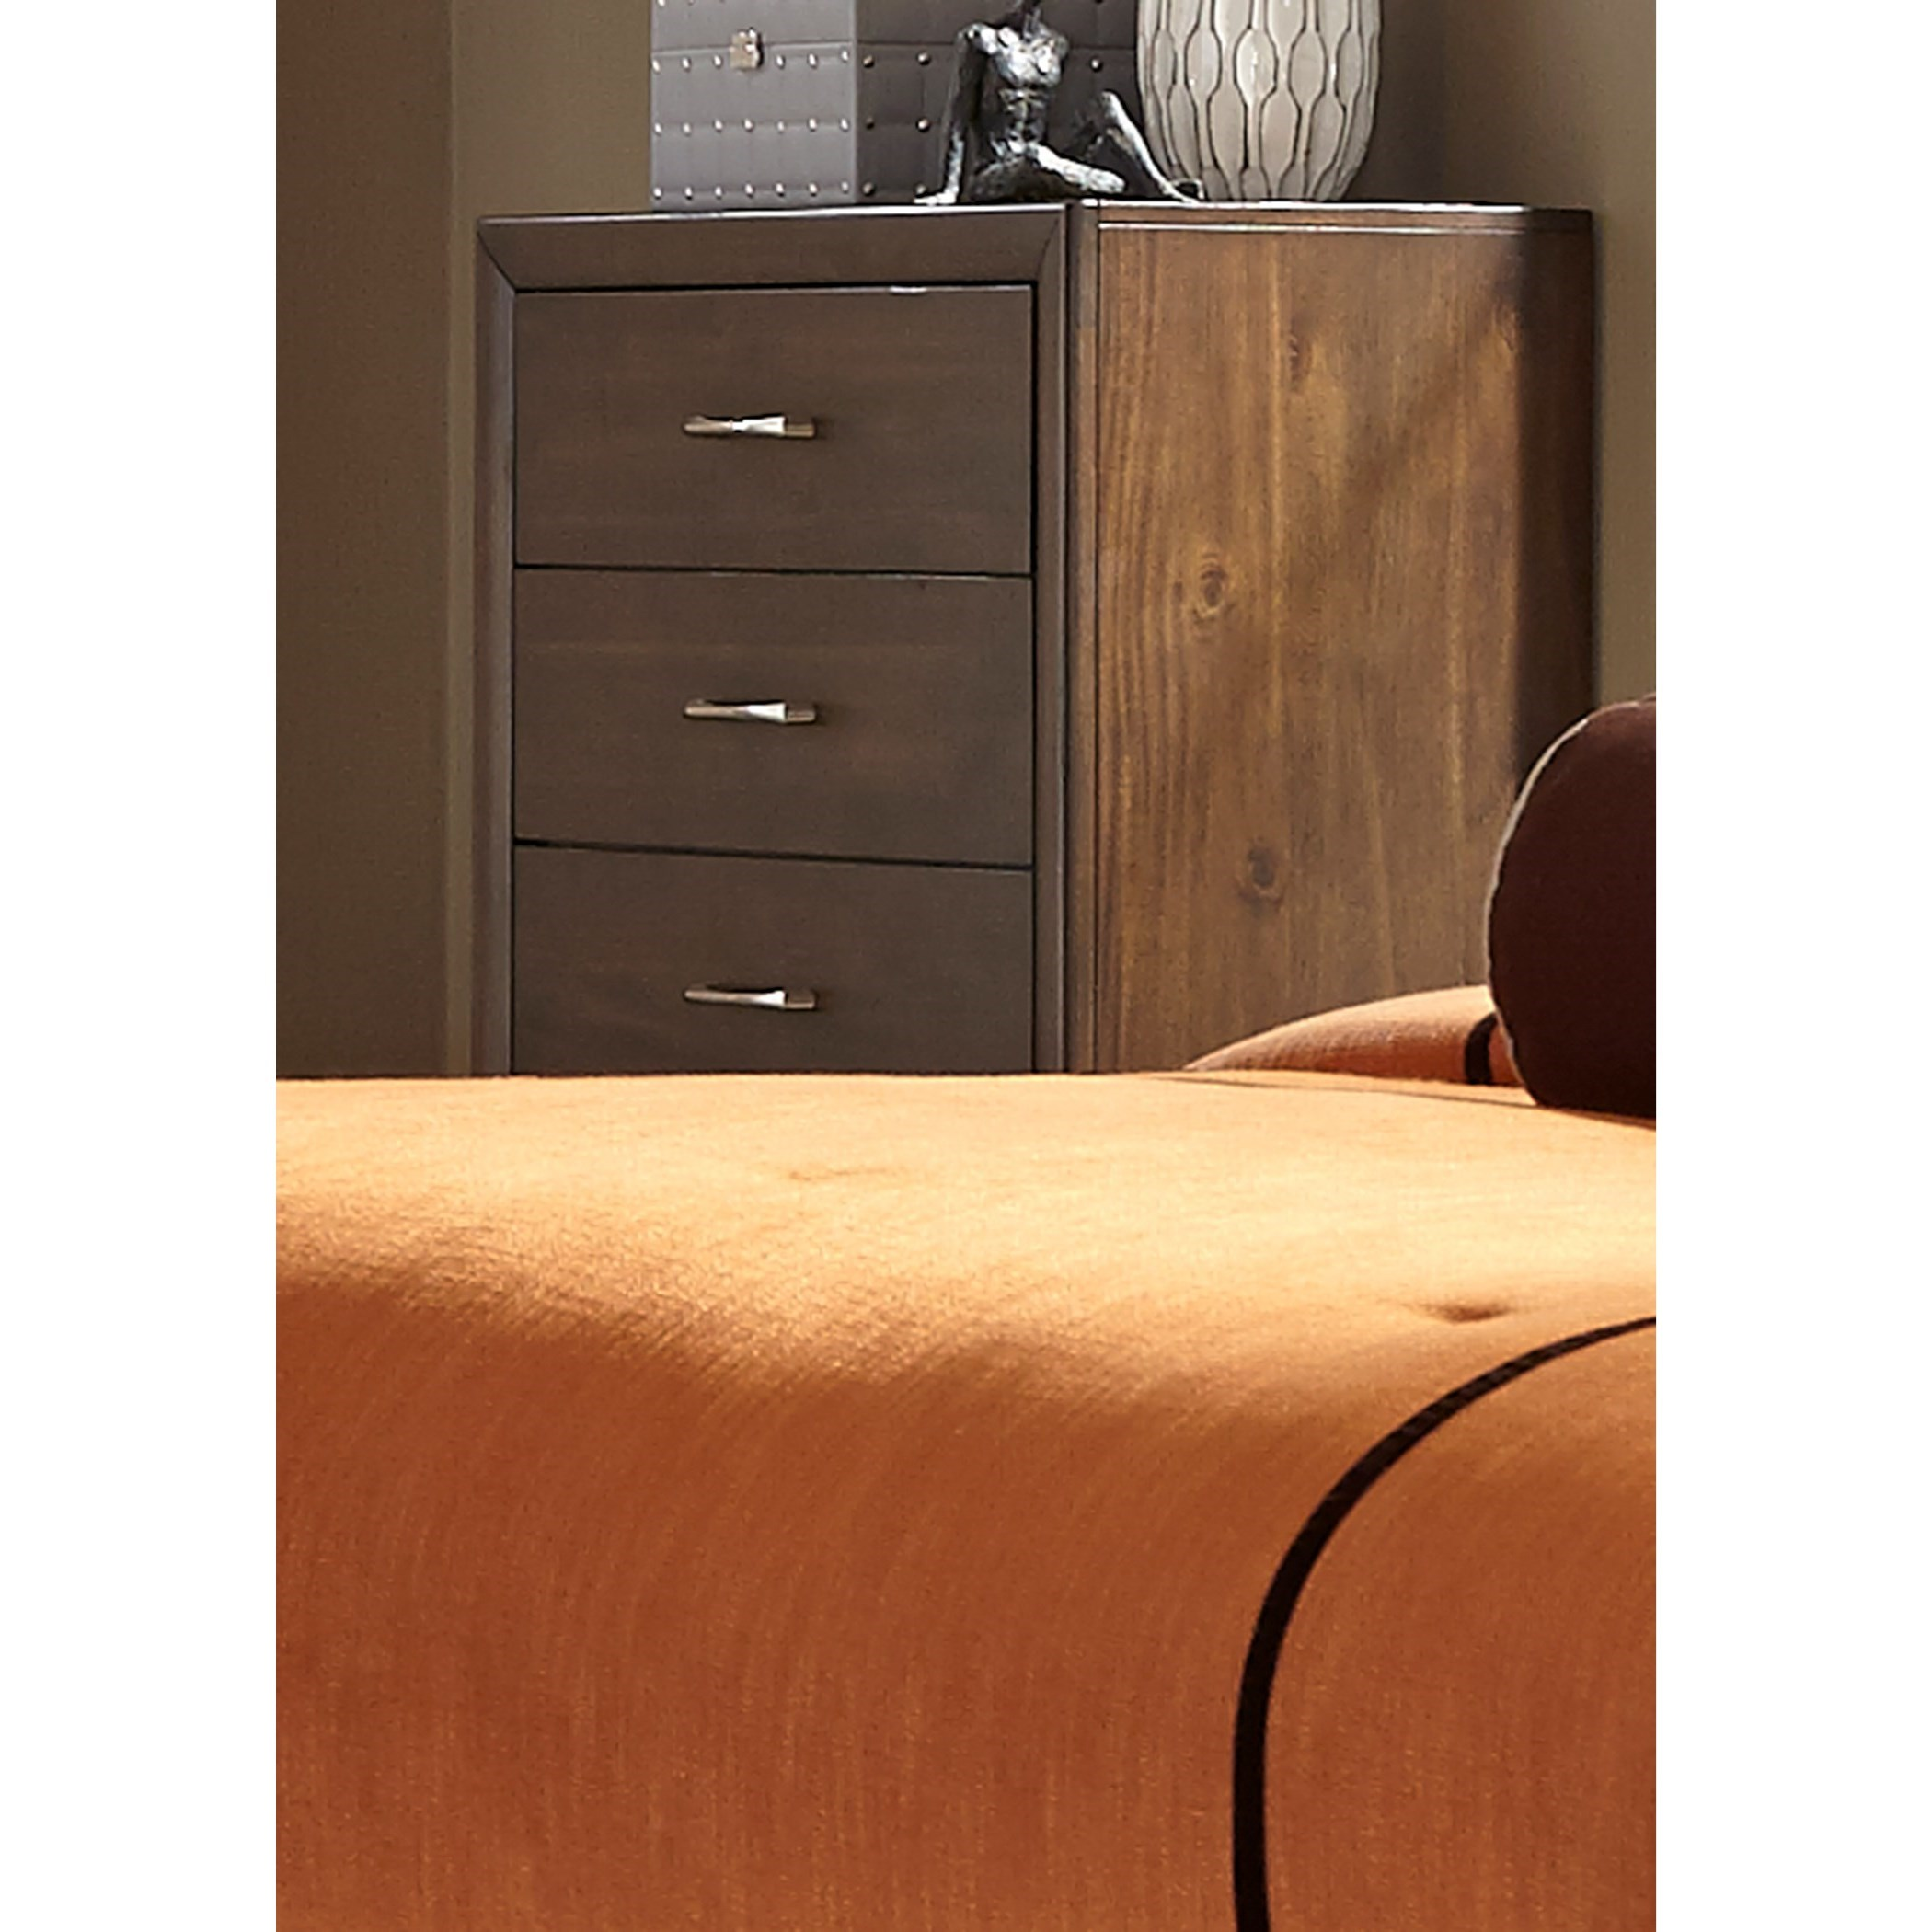 Liberty Furniture Hudson Square Bedroom 5 Drawer Chest - Item Number: 365-BR41